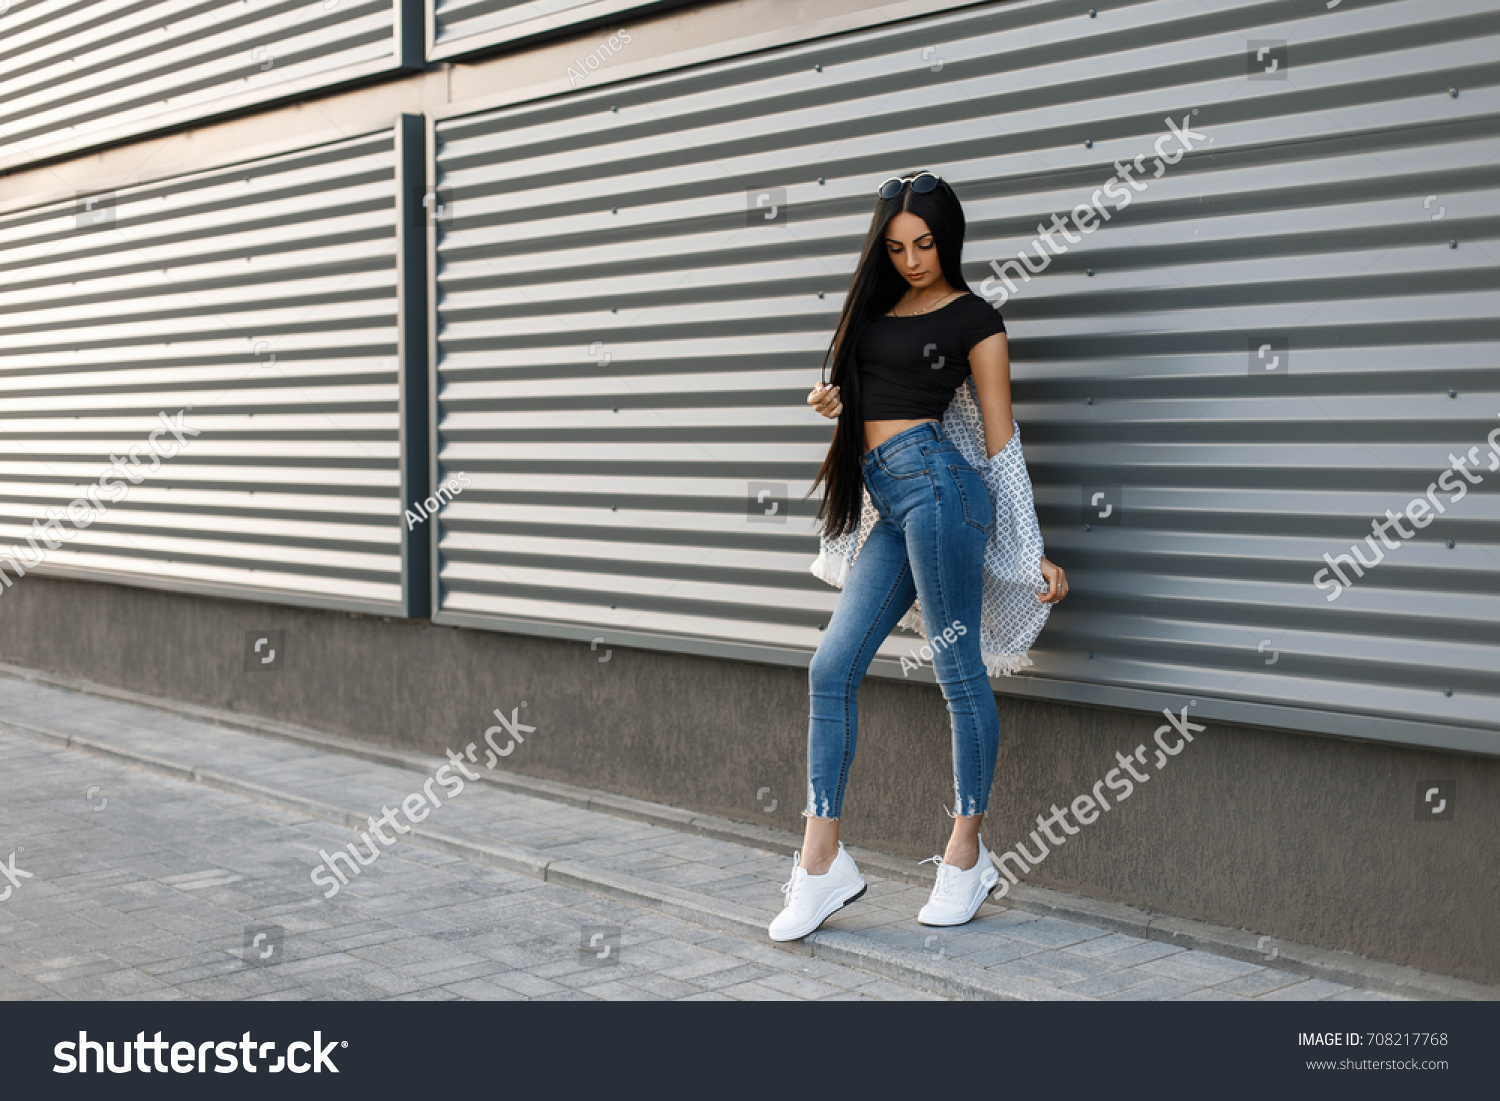 Standing woman wearing jeans and black boots — Stock Photo